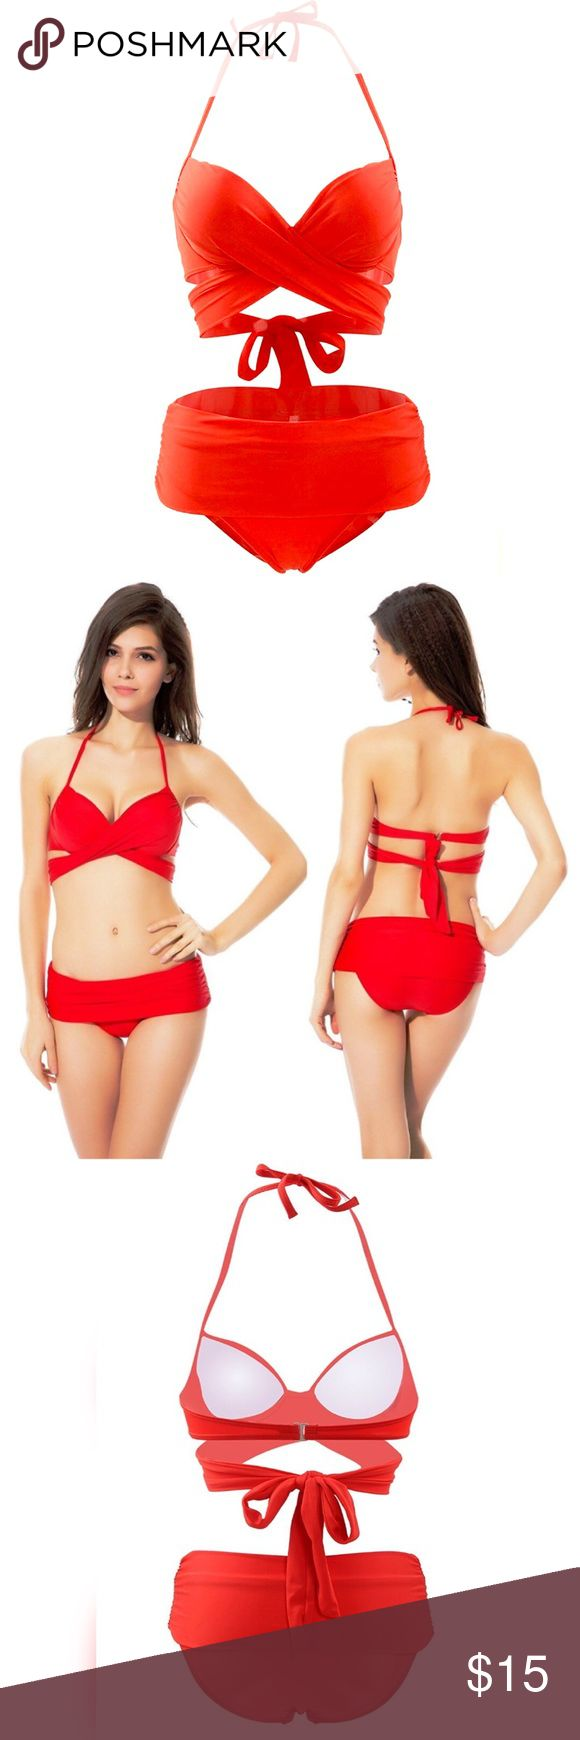 Strappy multiway bikini Cute little red bikini. Halter style top with clasp & tie back. Top can be worn a ton of ways (pictured). Bottoms can be worn with a high waist or folded down low. Tried on but never worn. Didn't Come with tags or it would still have them-does come in original packaging & with crotch liner. Labeled L but I'd say it fits more like a M. Swim Bikinis